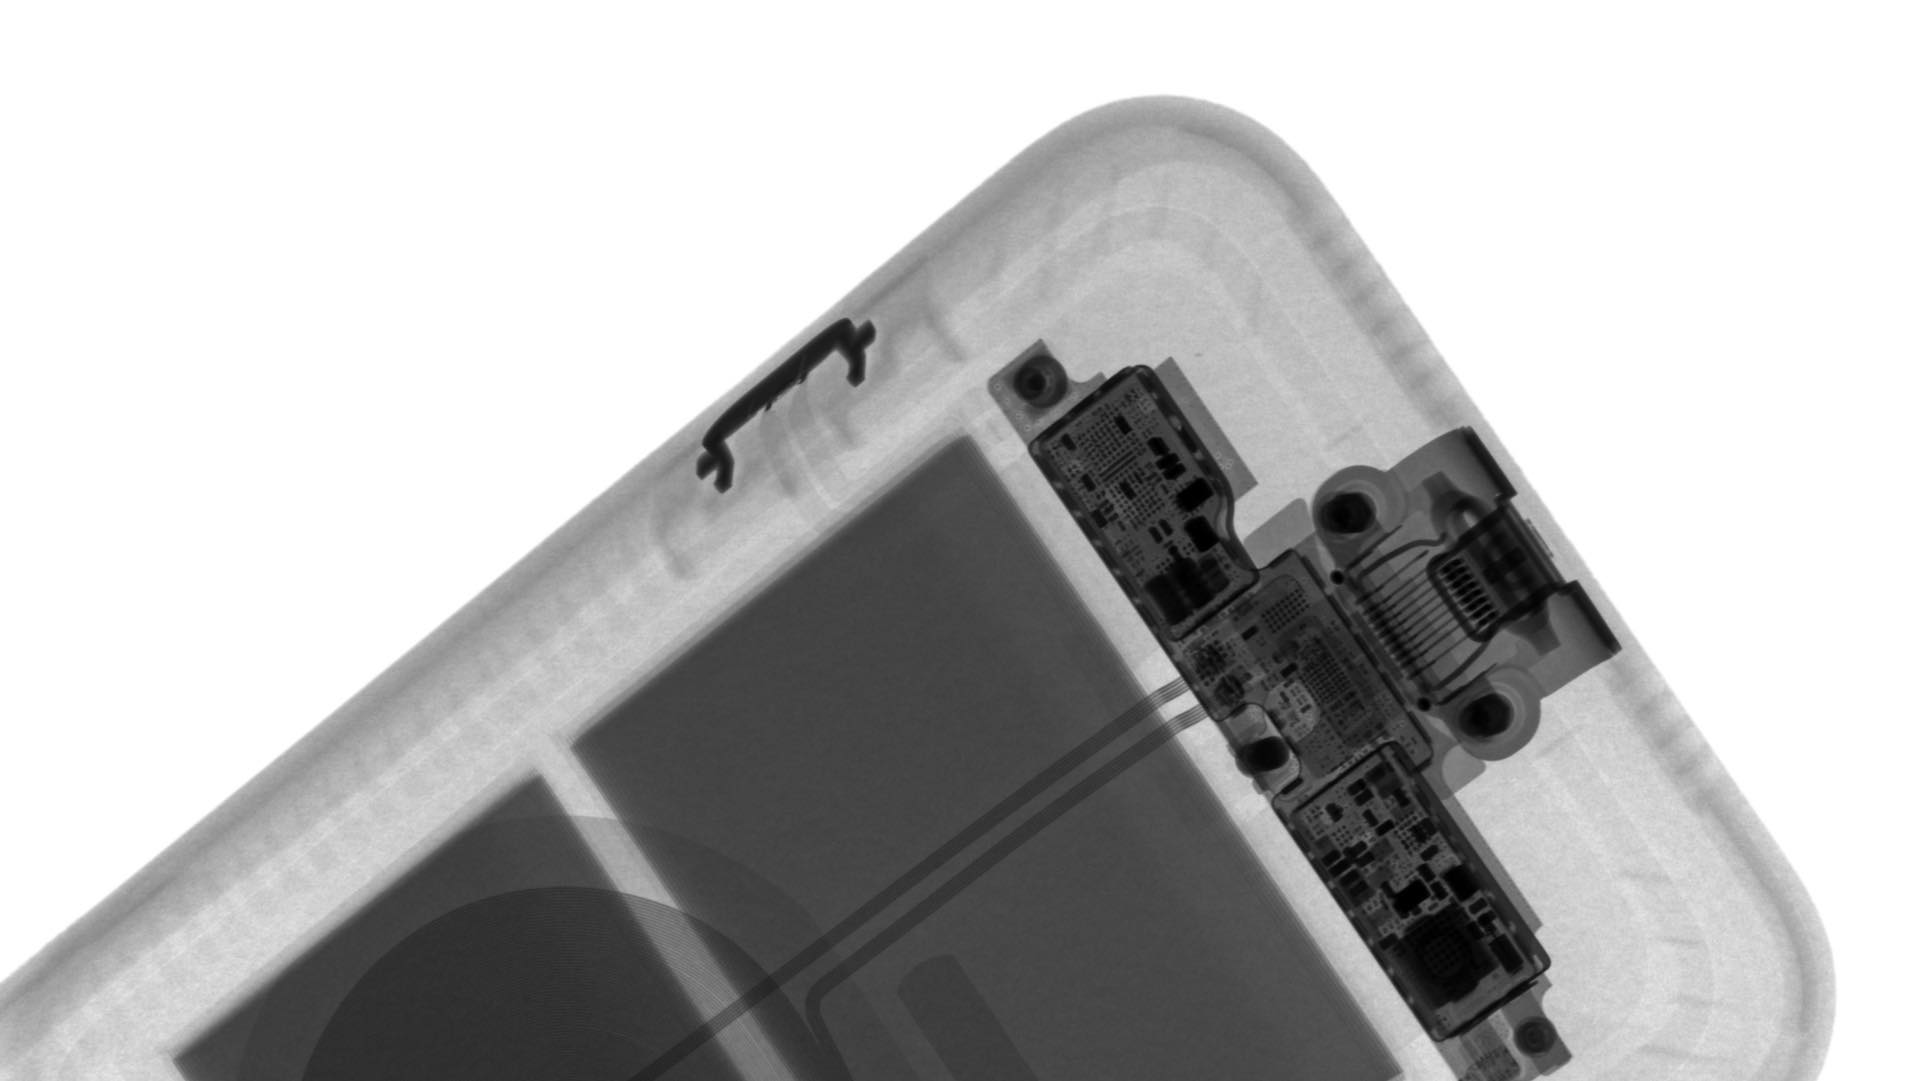 Close-up X-ray of the camera button on the Smart Case